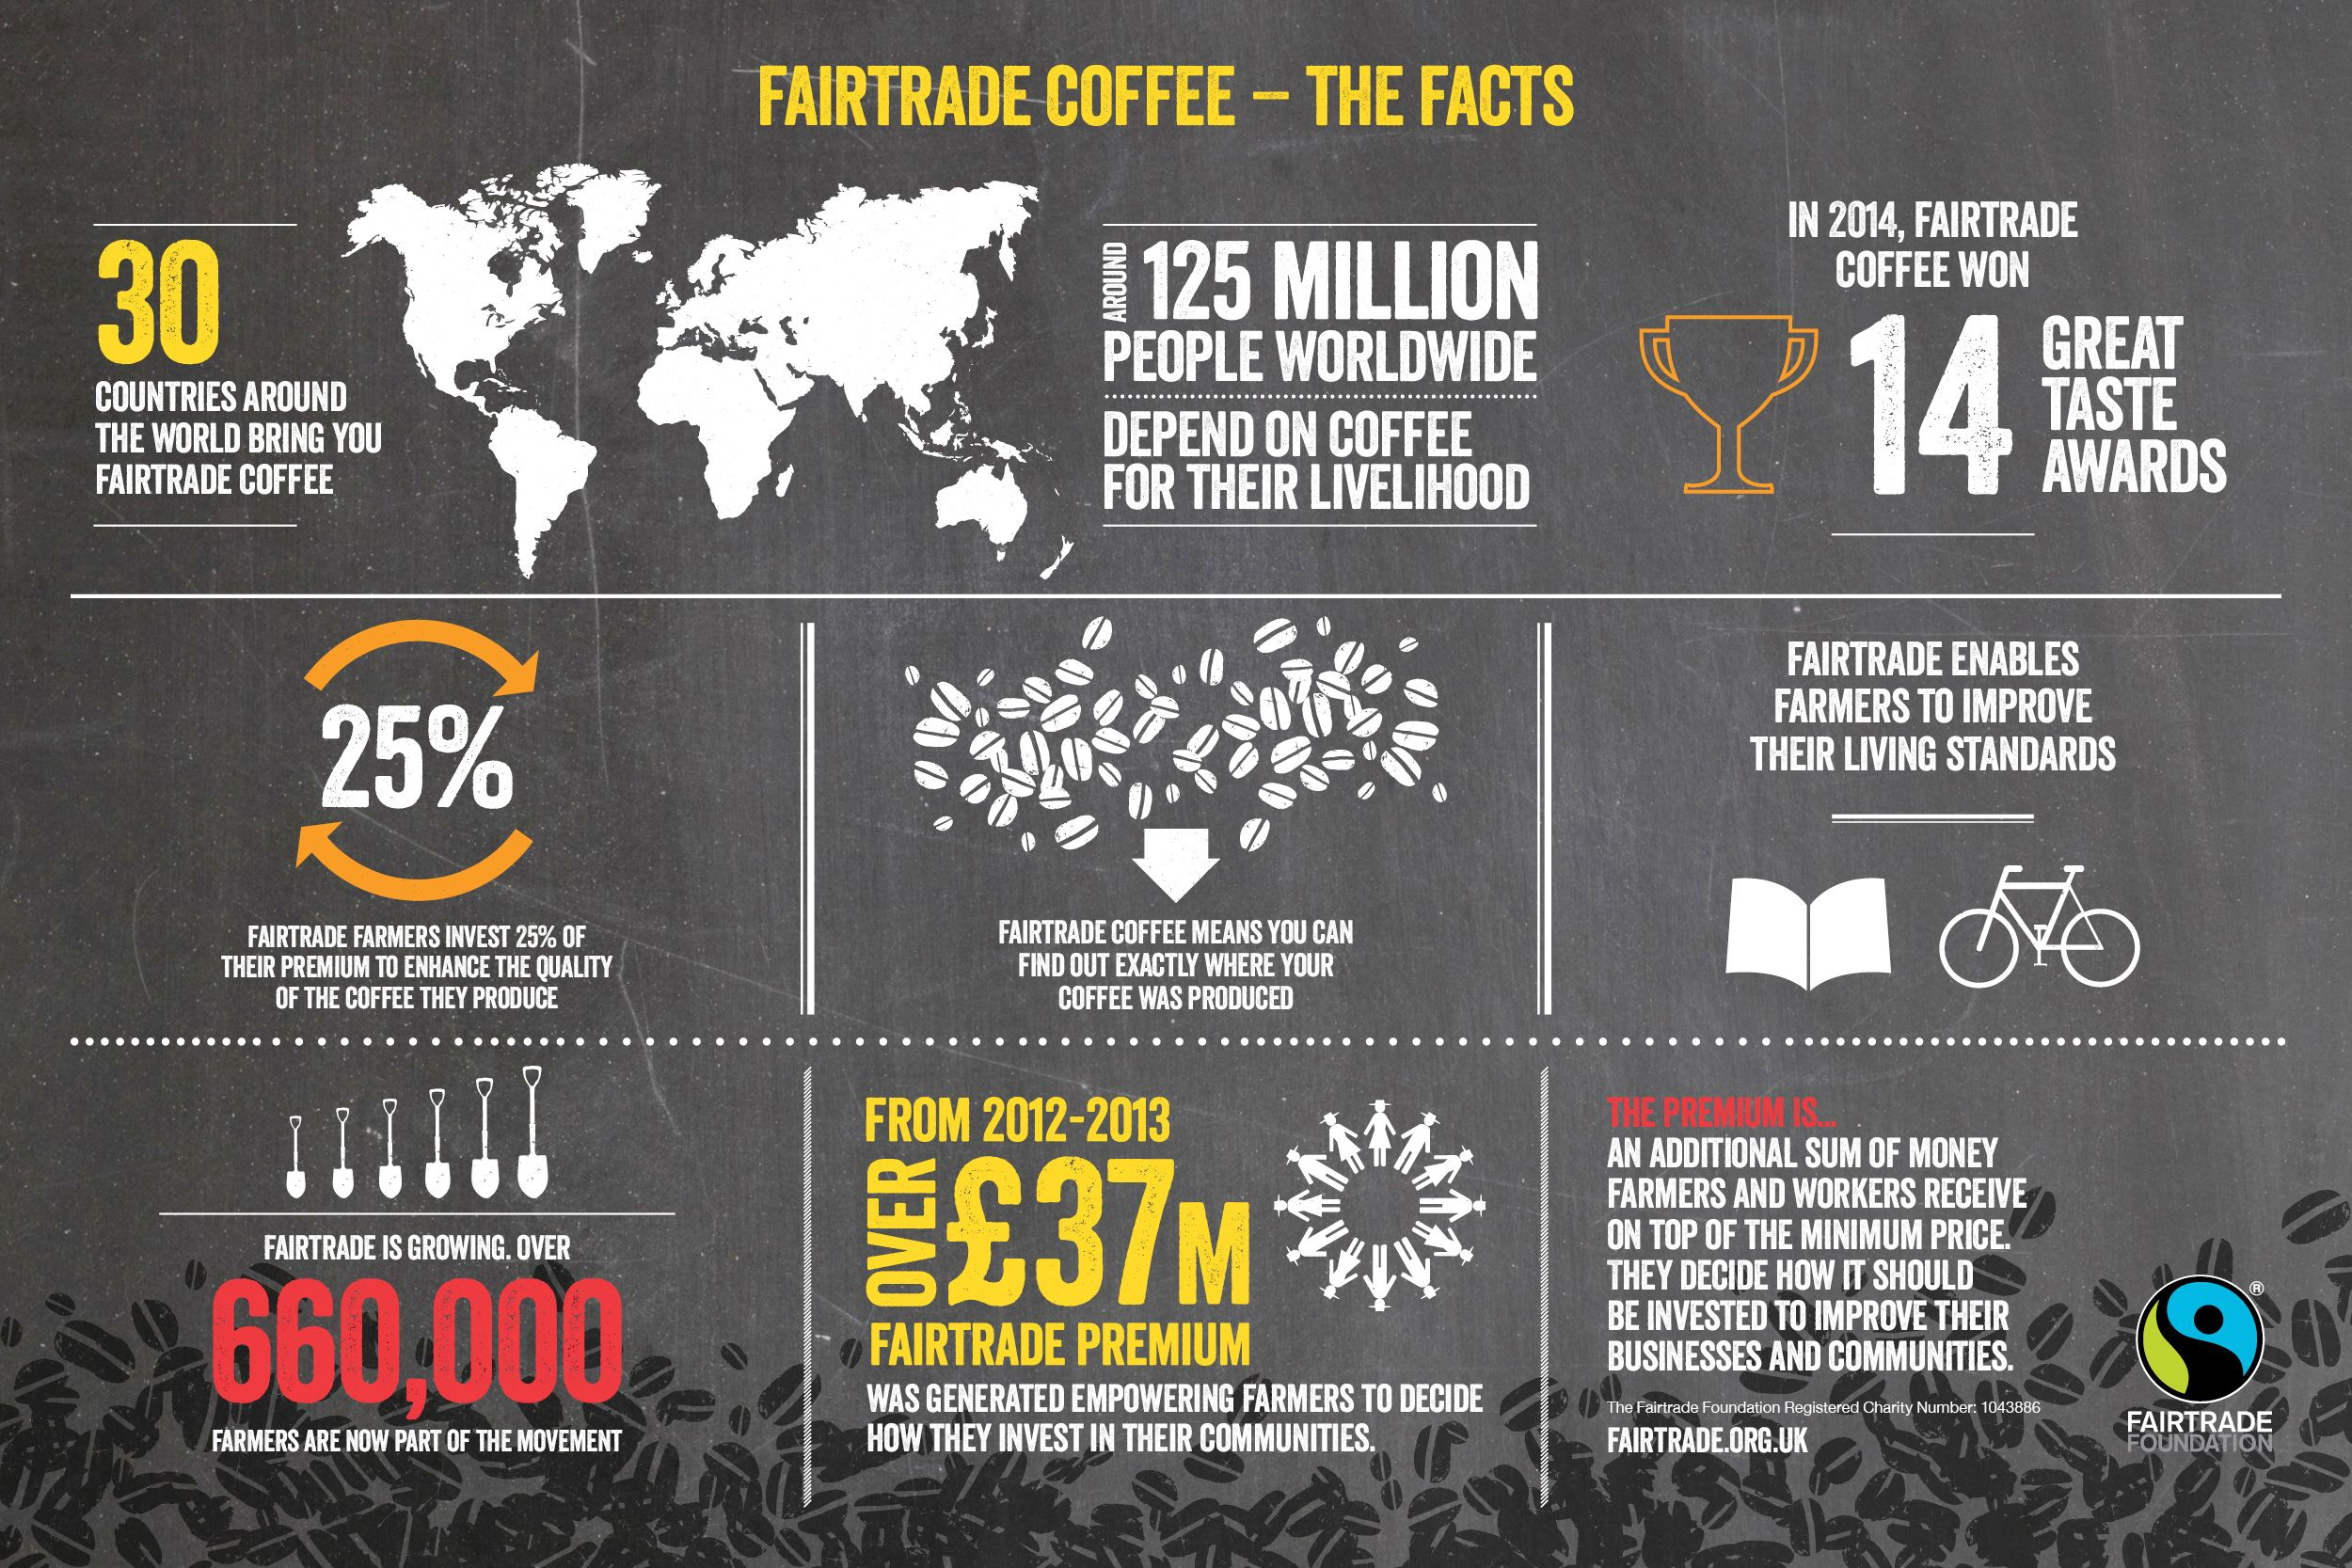 How is Fairtrade making things better? Fairtrade Coffee